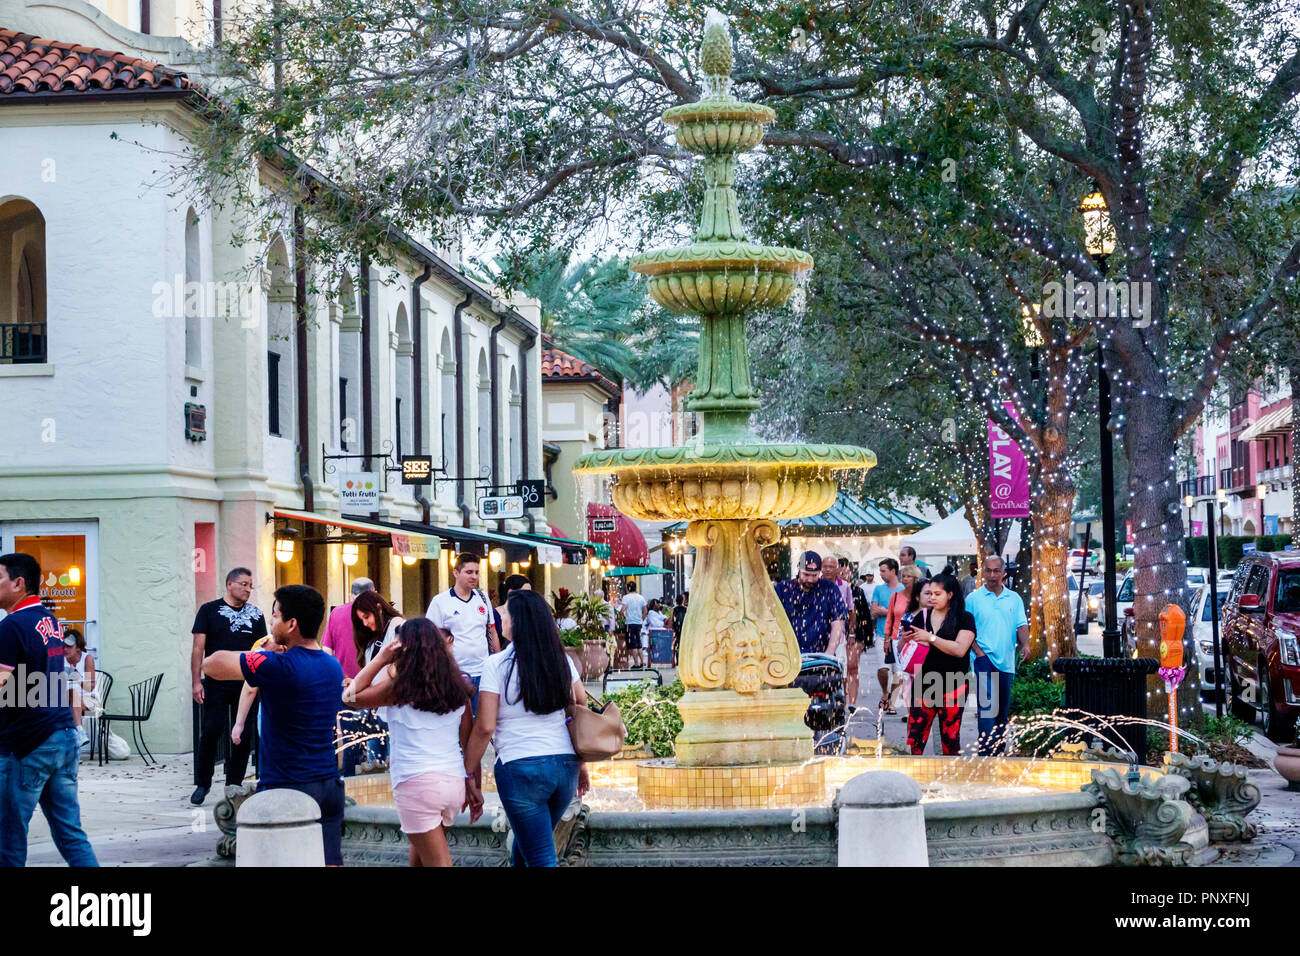 West Palm Beach Florida CityPlace shopping plaza fountain - Stock Image